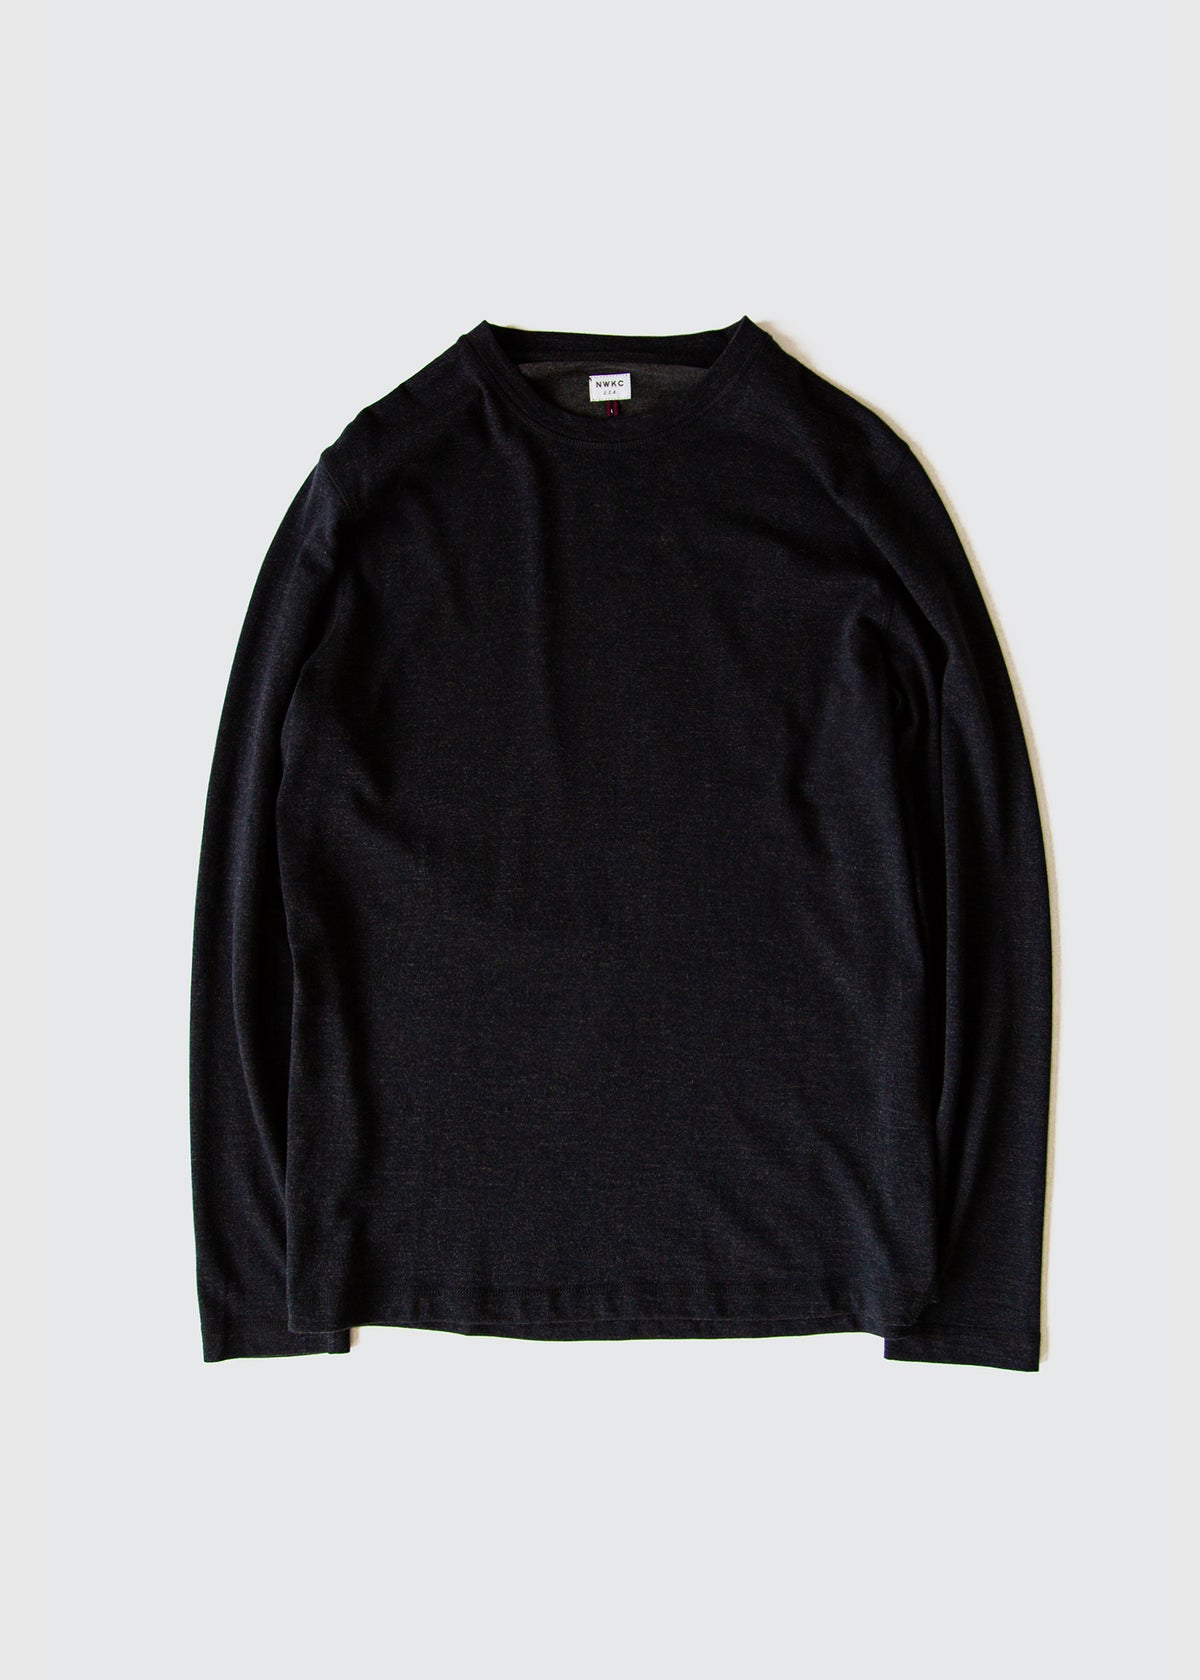 102 - LS TEE - NAVY - Wilson & Willy's - MPLS Neighbor Goods